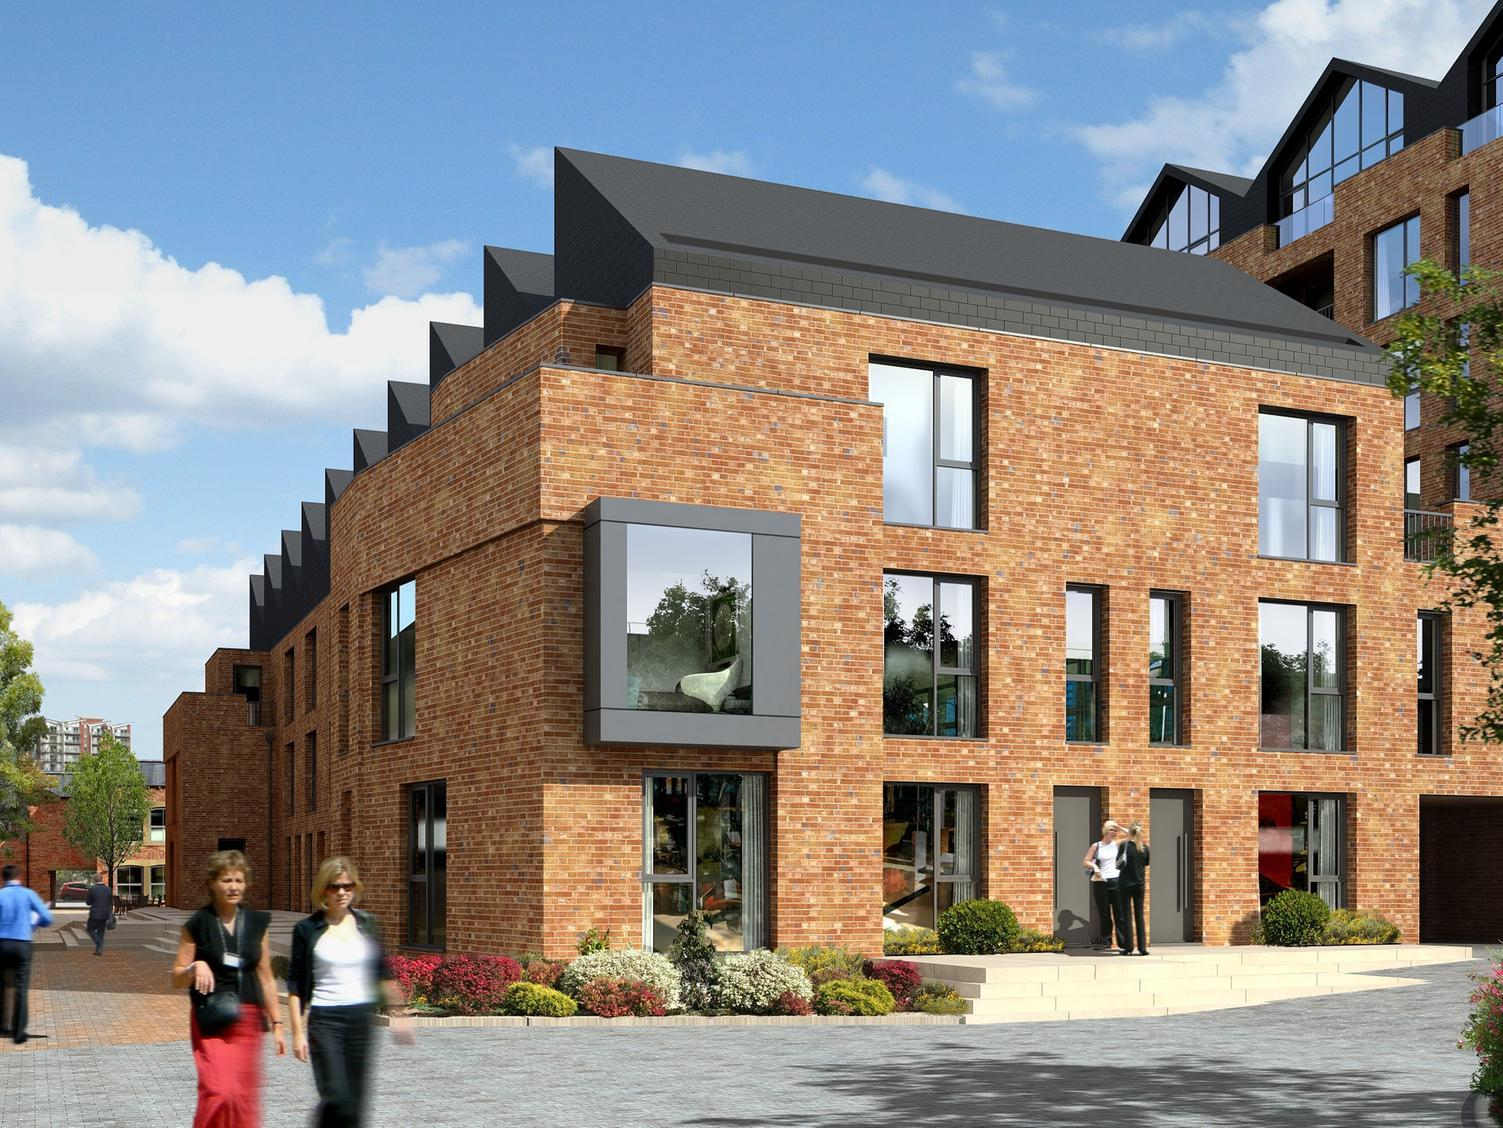 Take a look inside the townhouses and apartments transforming Leeds city centre living